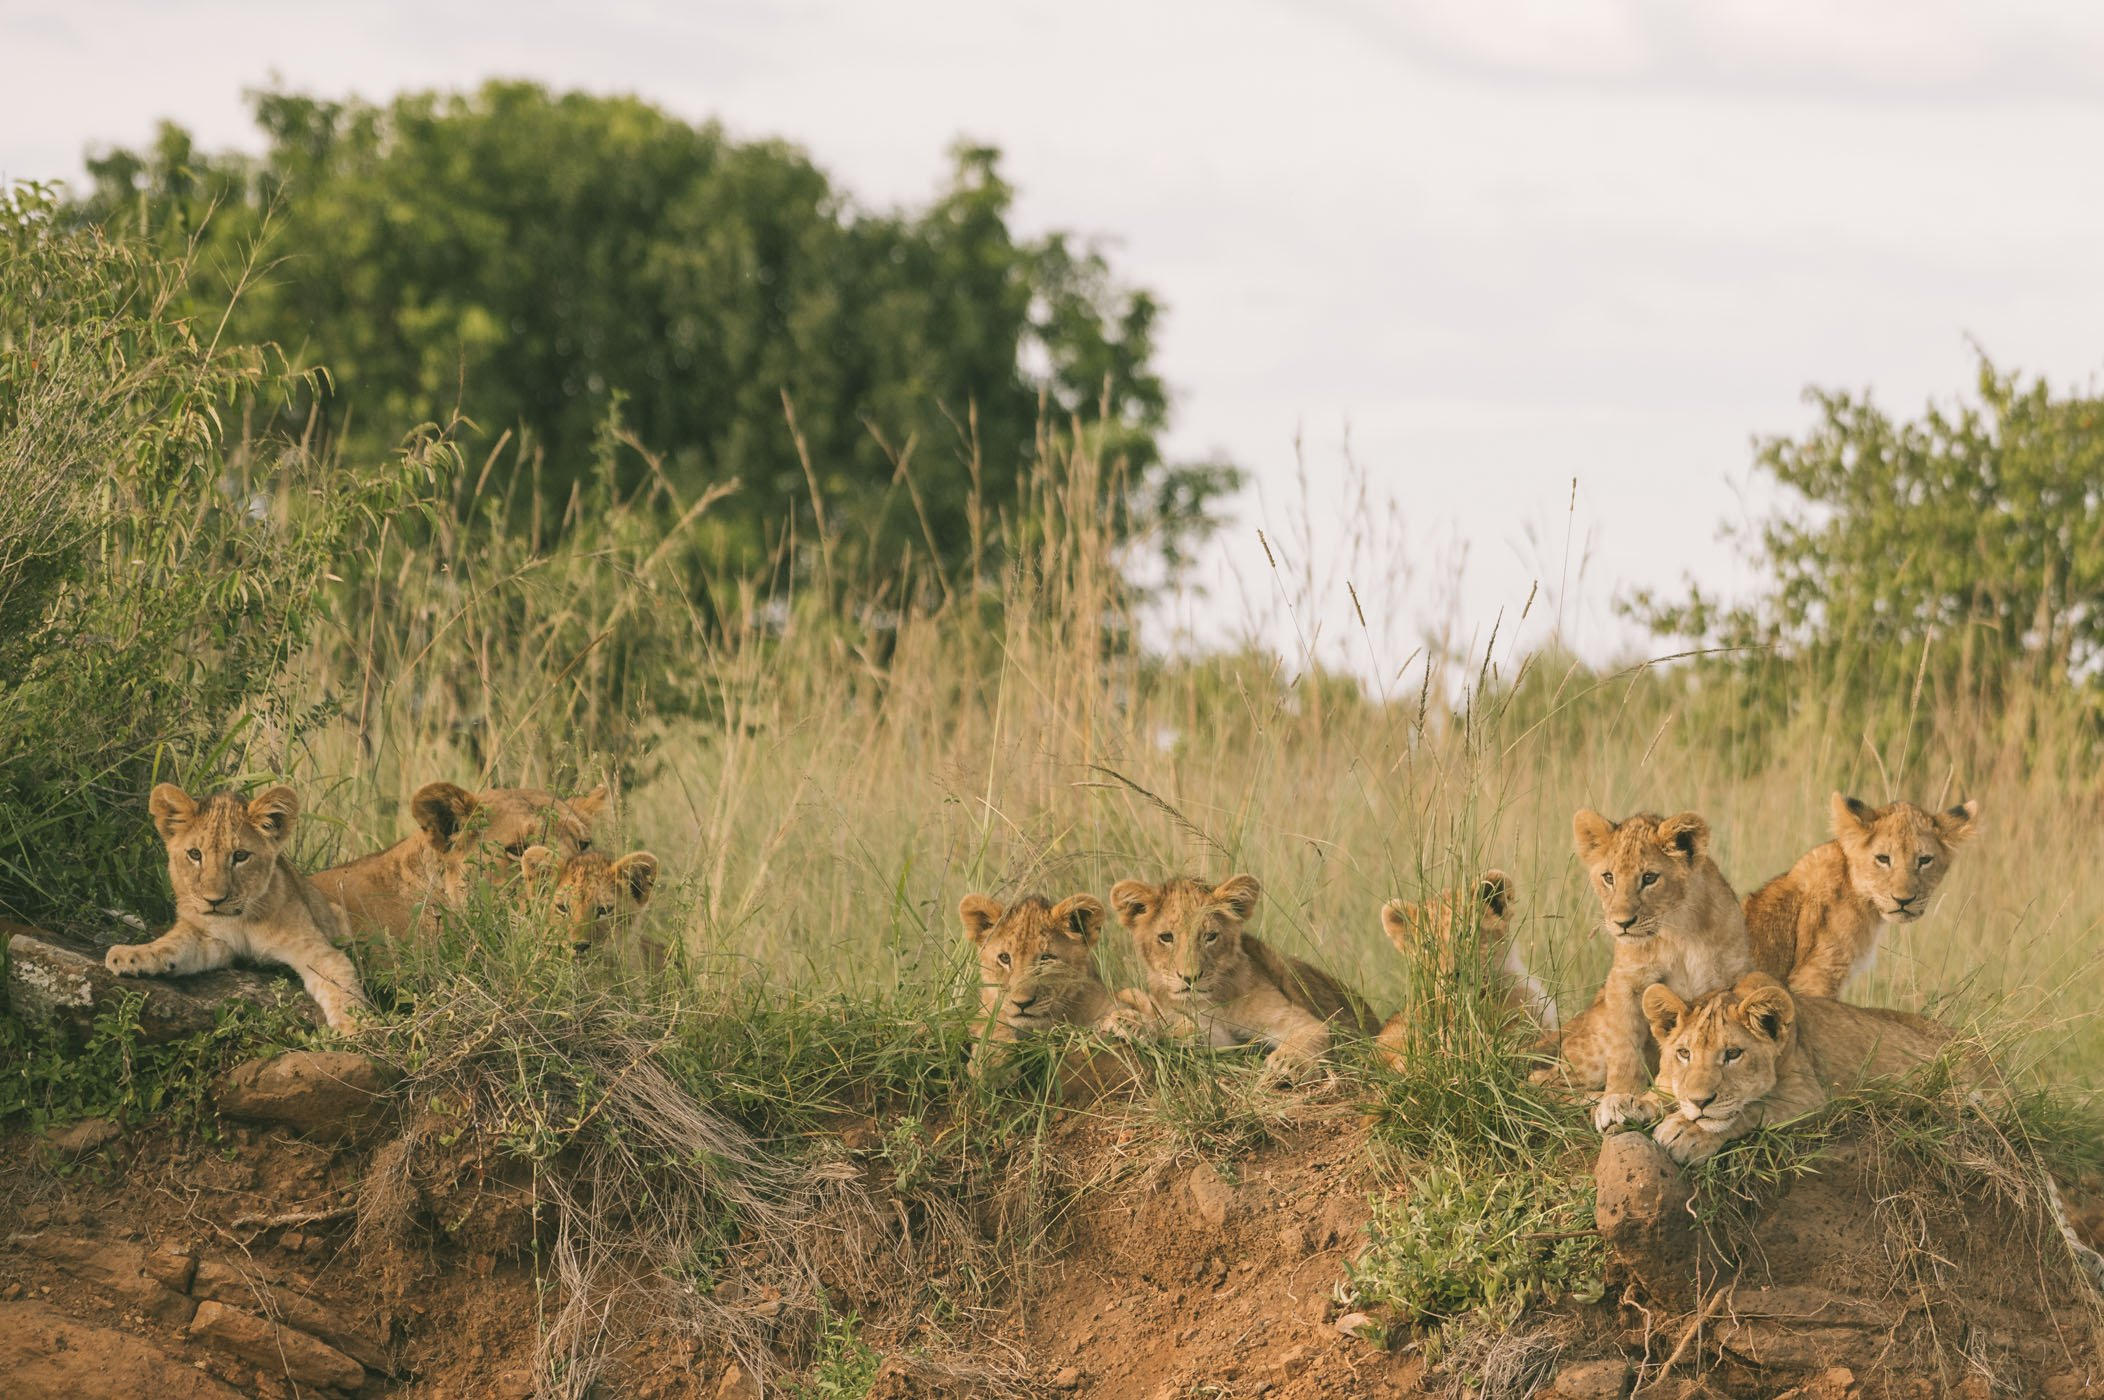 The famous paradise tribe had 9 cubs this year